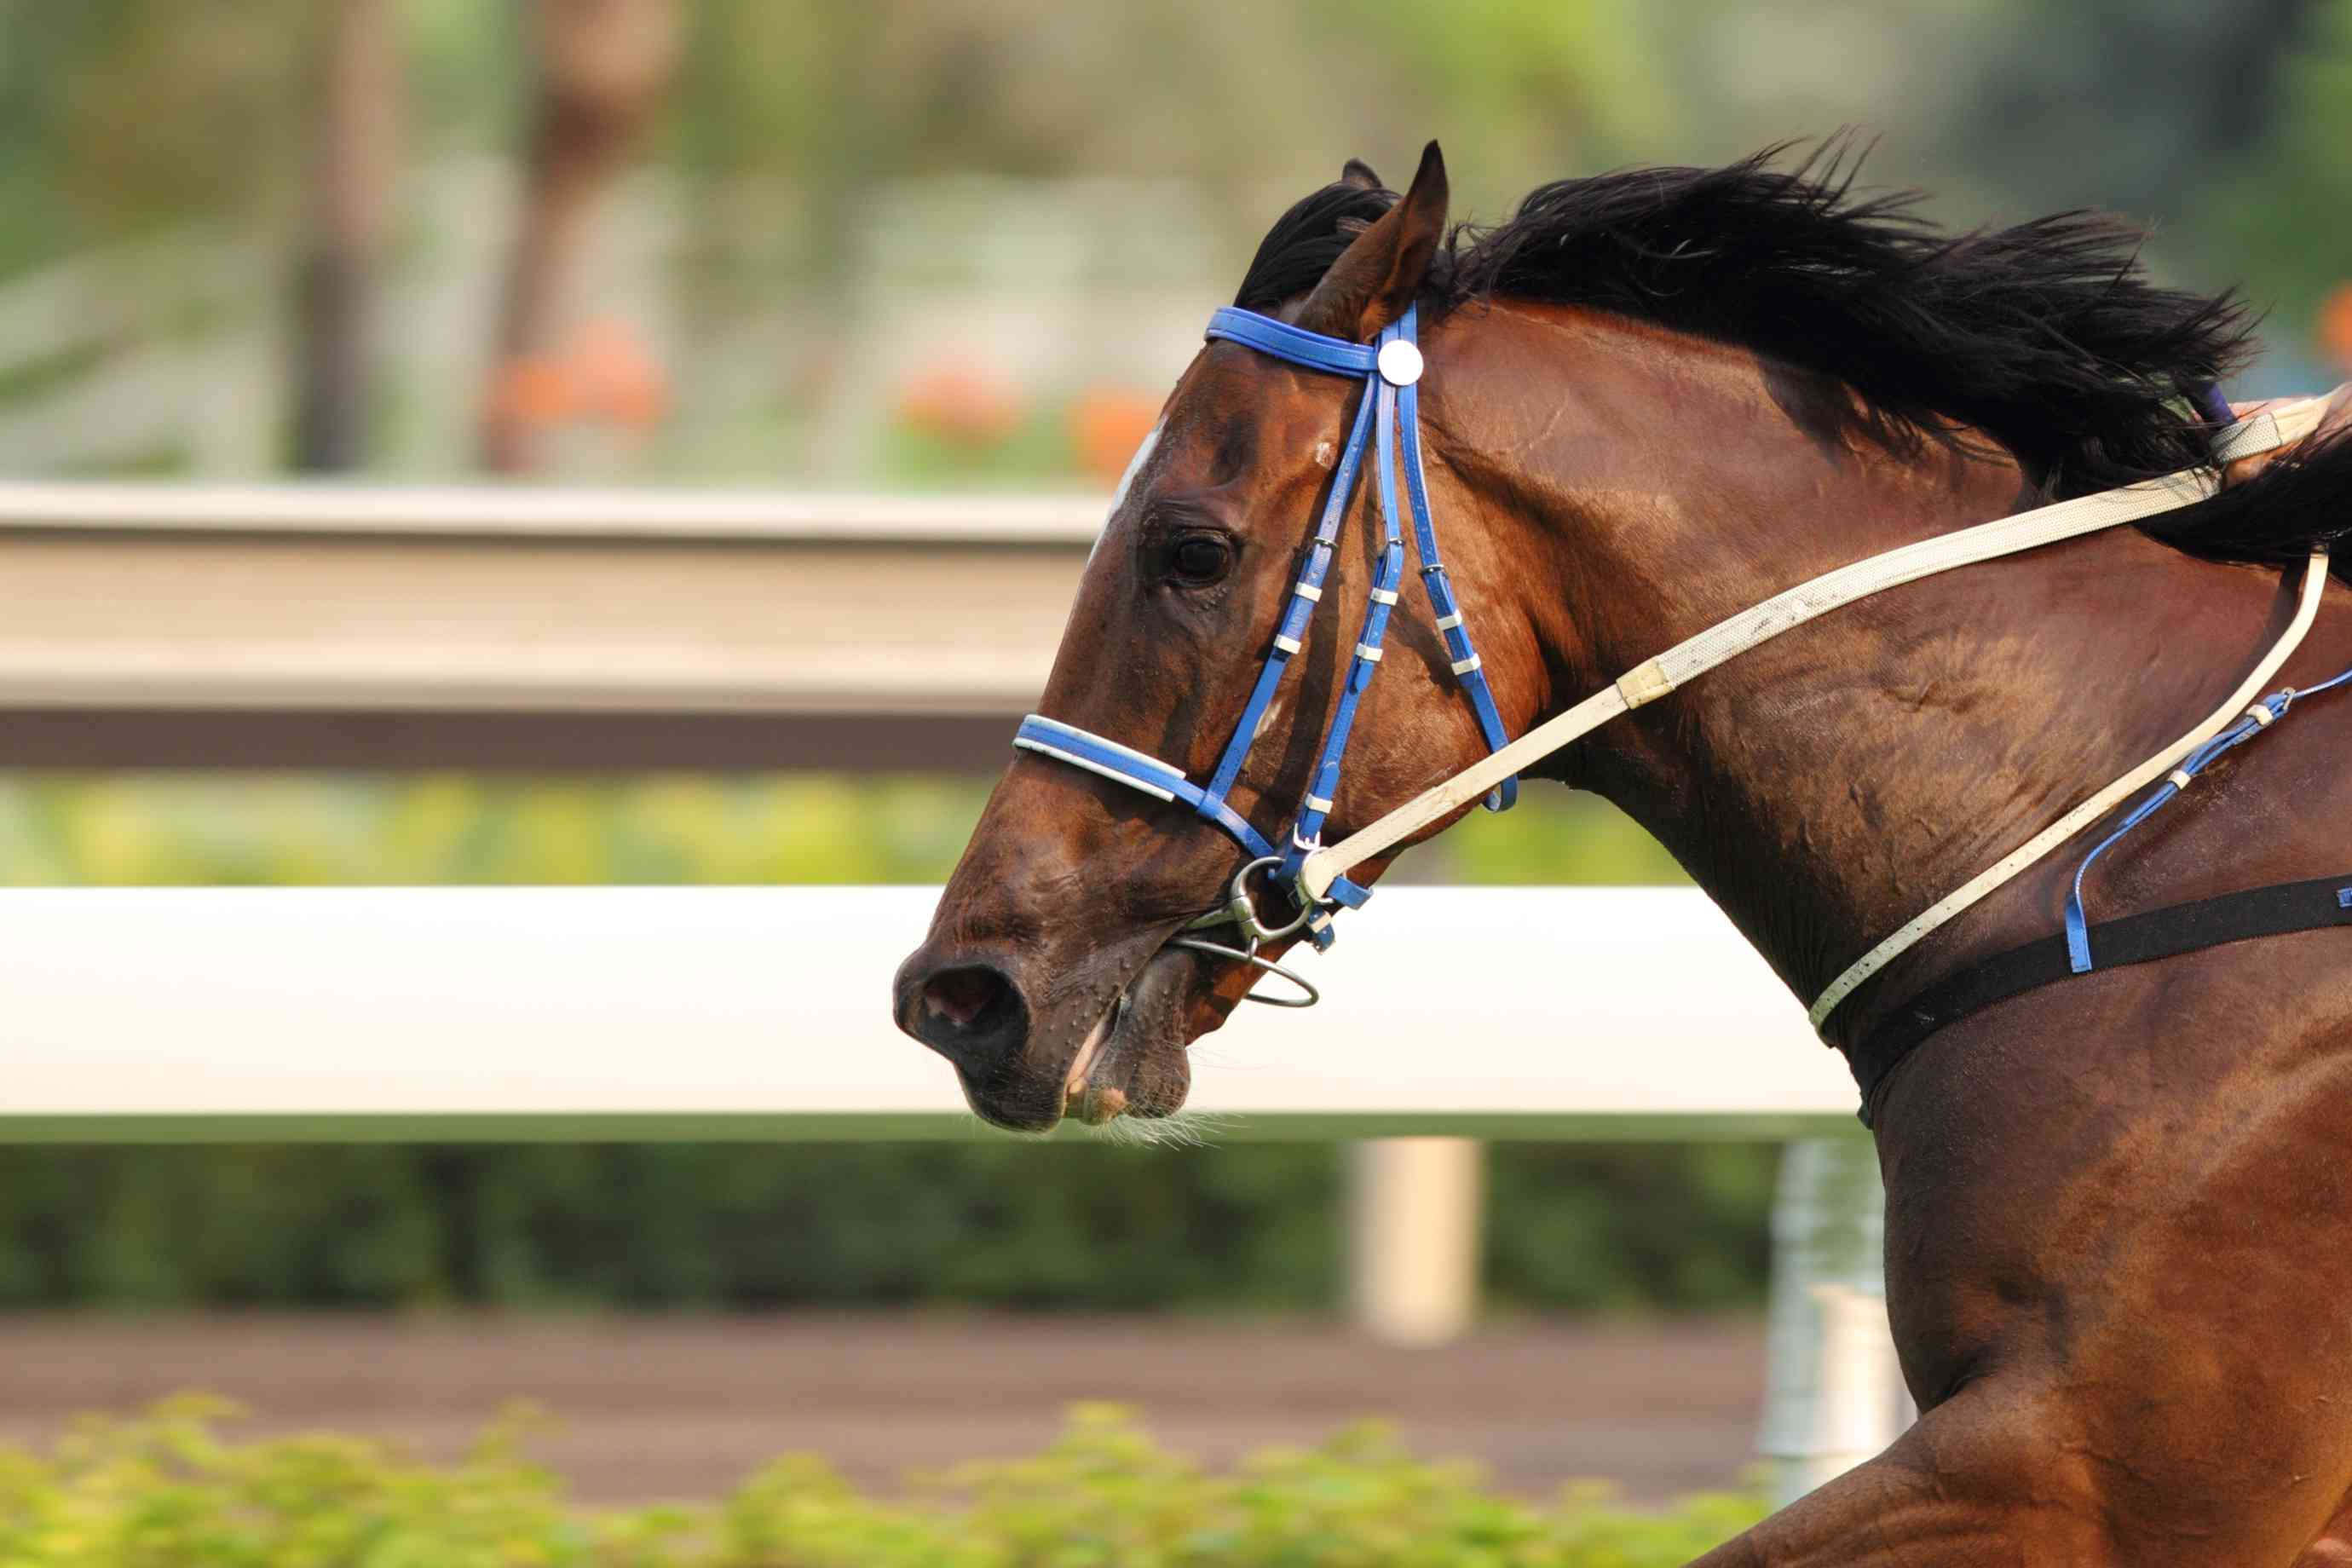 Quarter horse running on a track